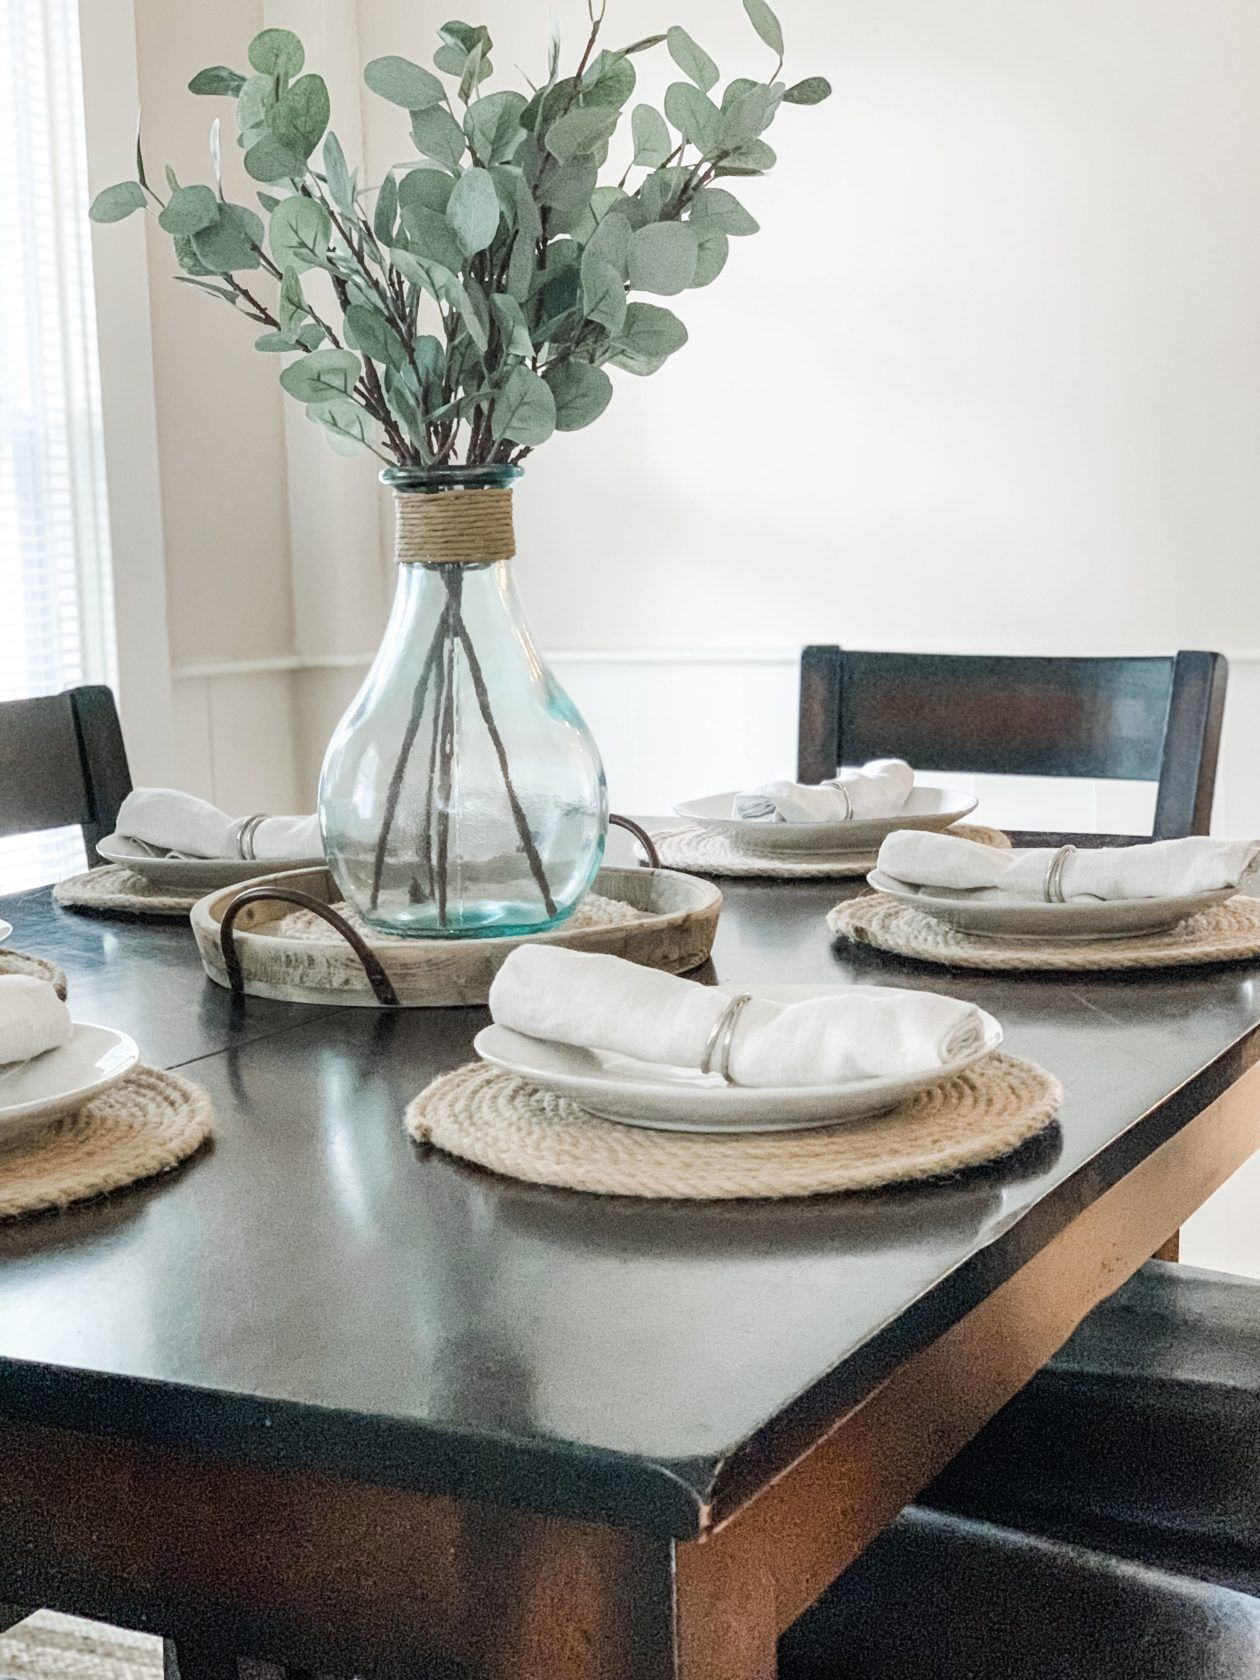 Why Spend A Fortune On Jute Place Mats When You Can Just Make Your Own For Dining Table Centerpiece Dining Table Decor Centerpiece Table Centerpieces For Home